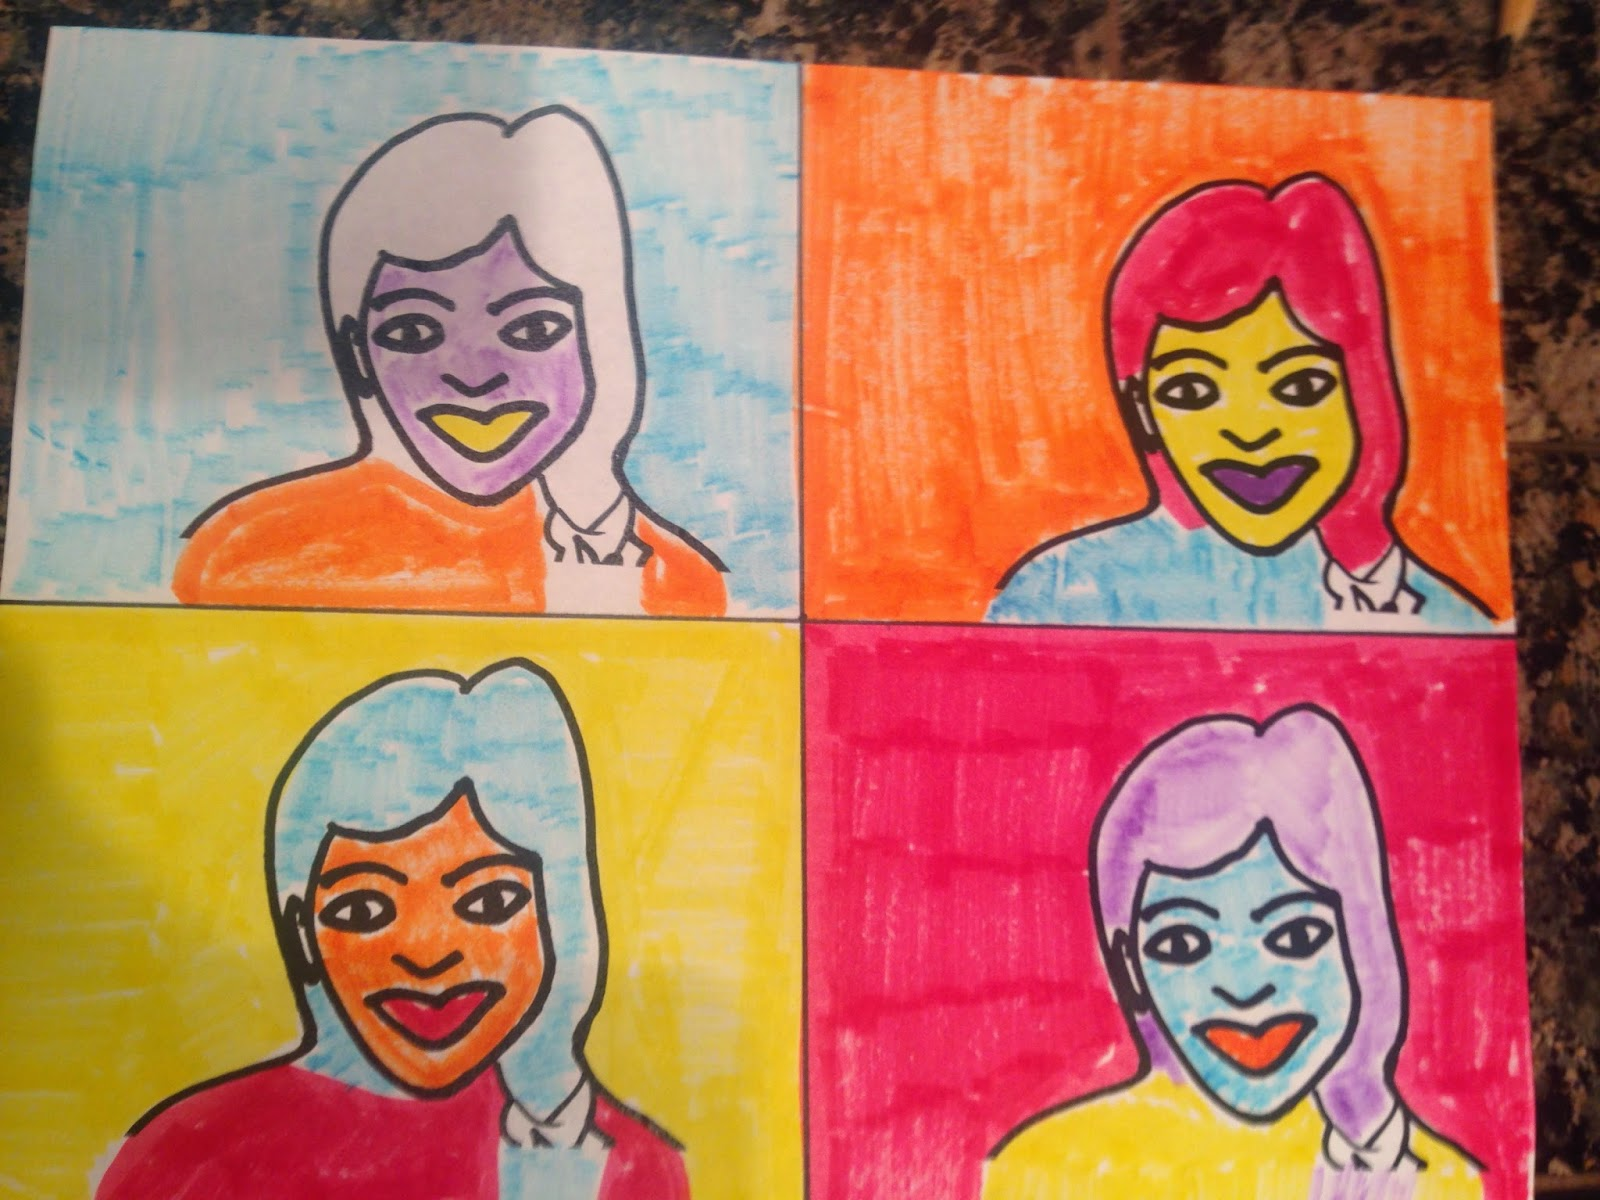 Art A Baloo Crew Self Portraits Done In Andy Warhol Style